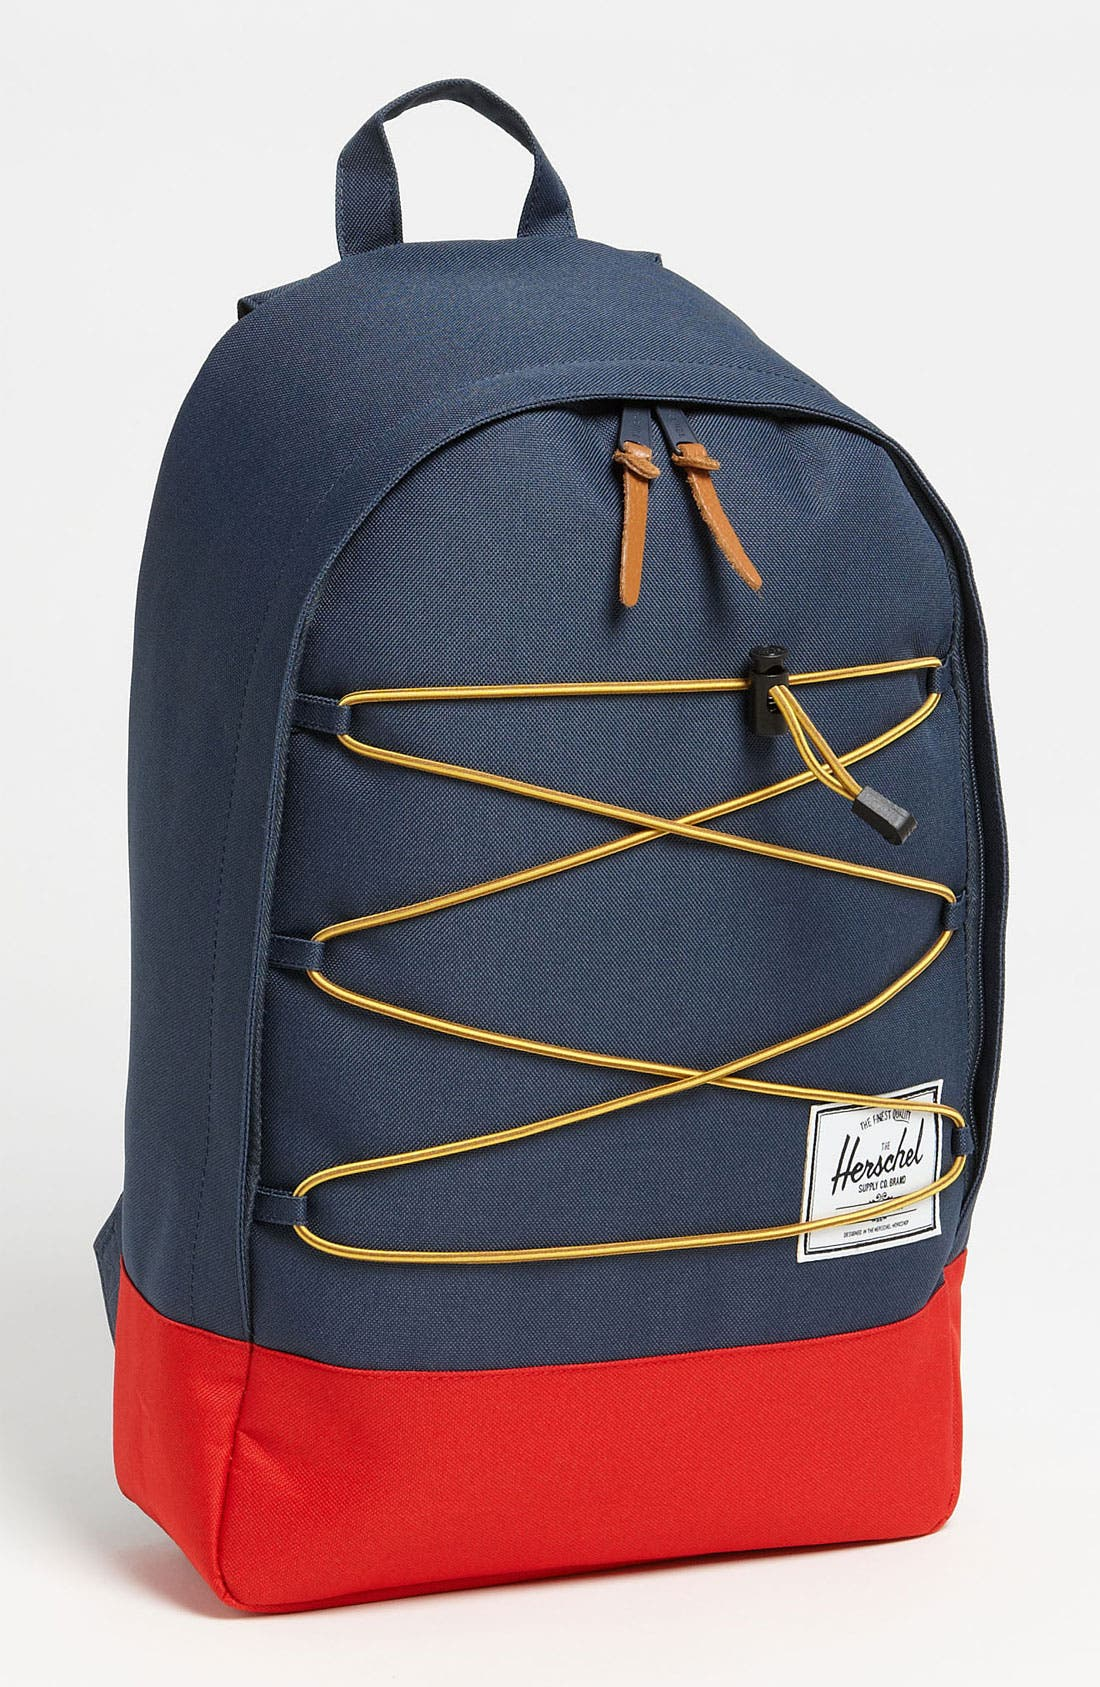 Alternate Image 1 Selected - Herschel Supply Co. 'Quarry' Backpack